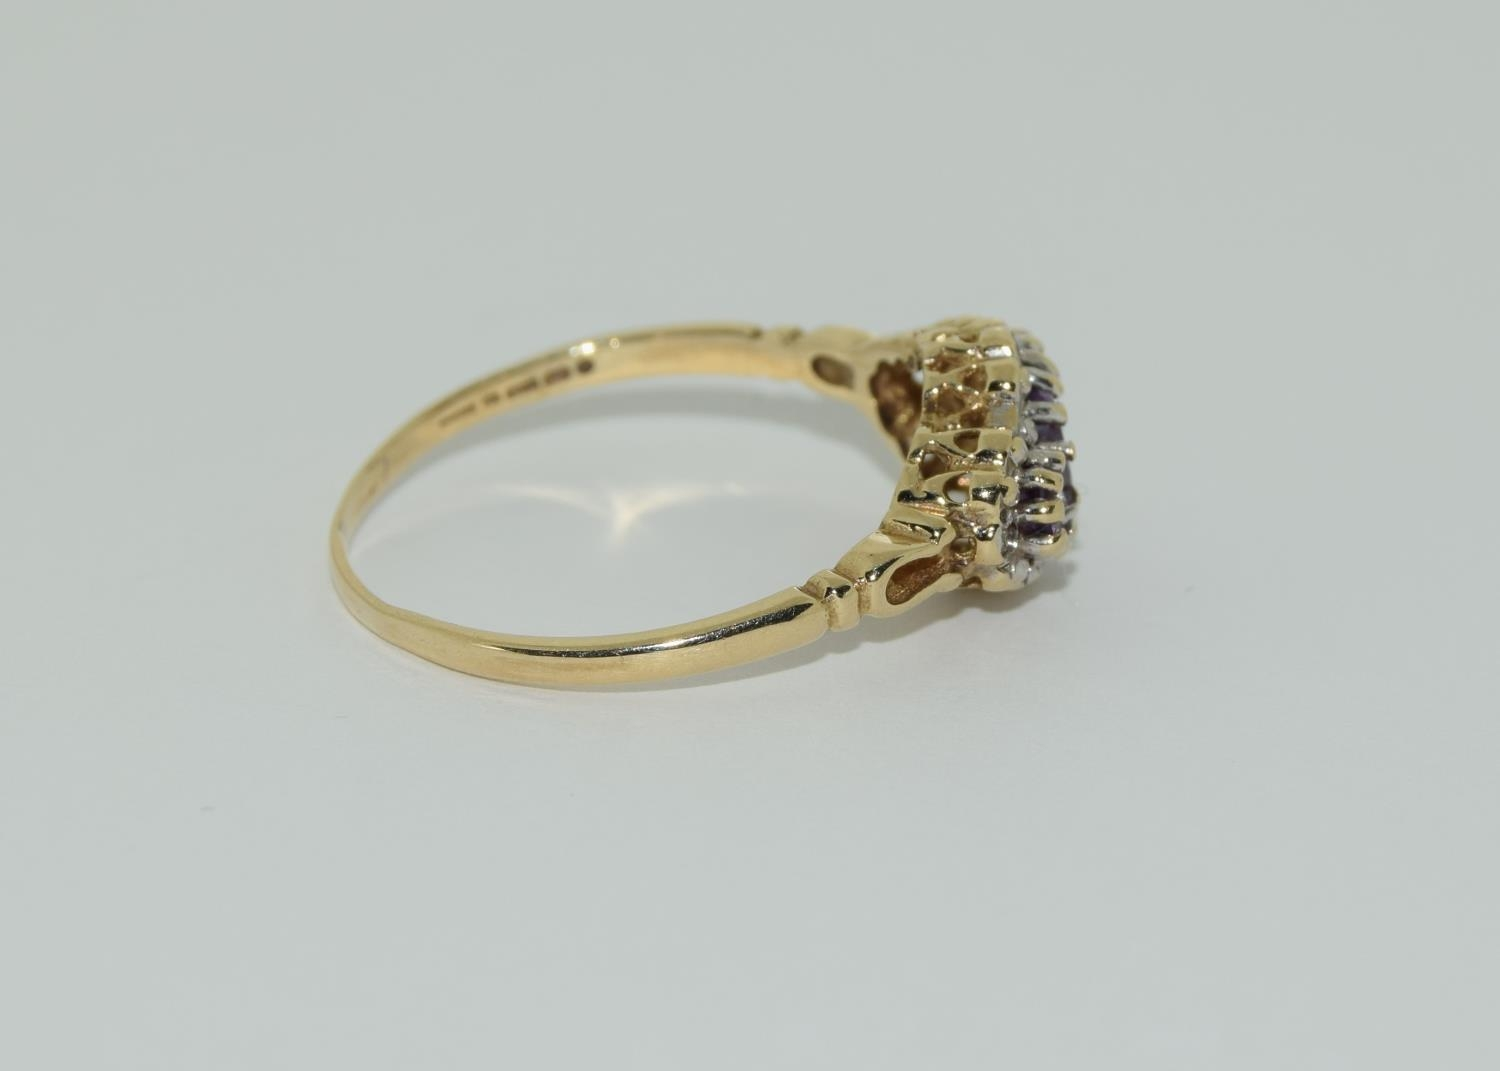 Vintage 9ct gold amethyst and diamond ring. 1.9grams, size R. - Image 2 of 6